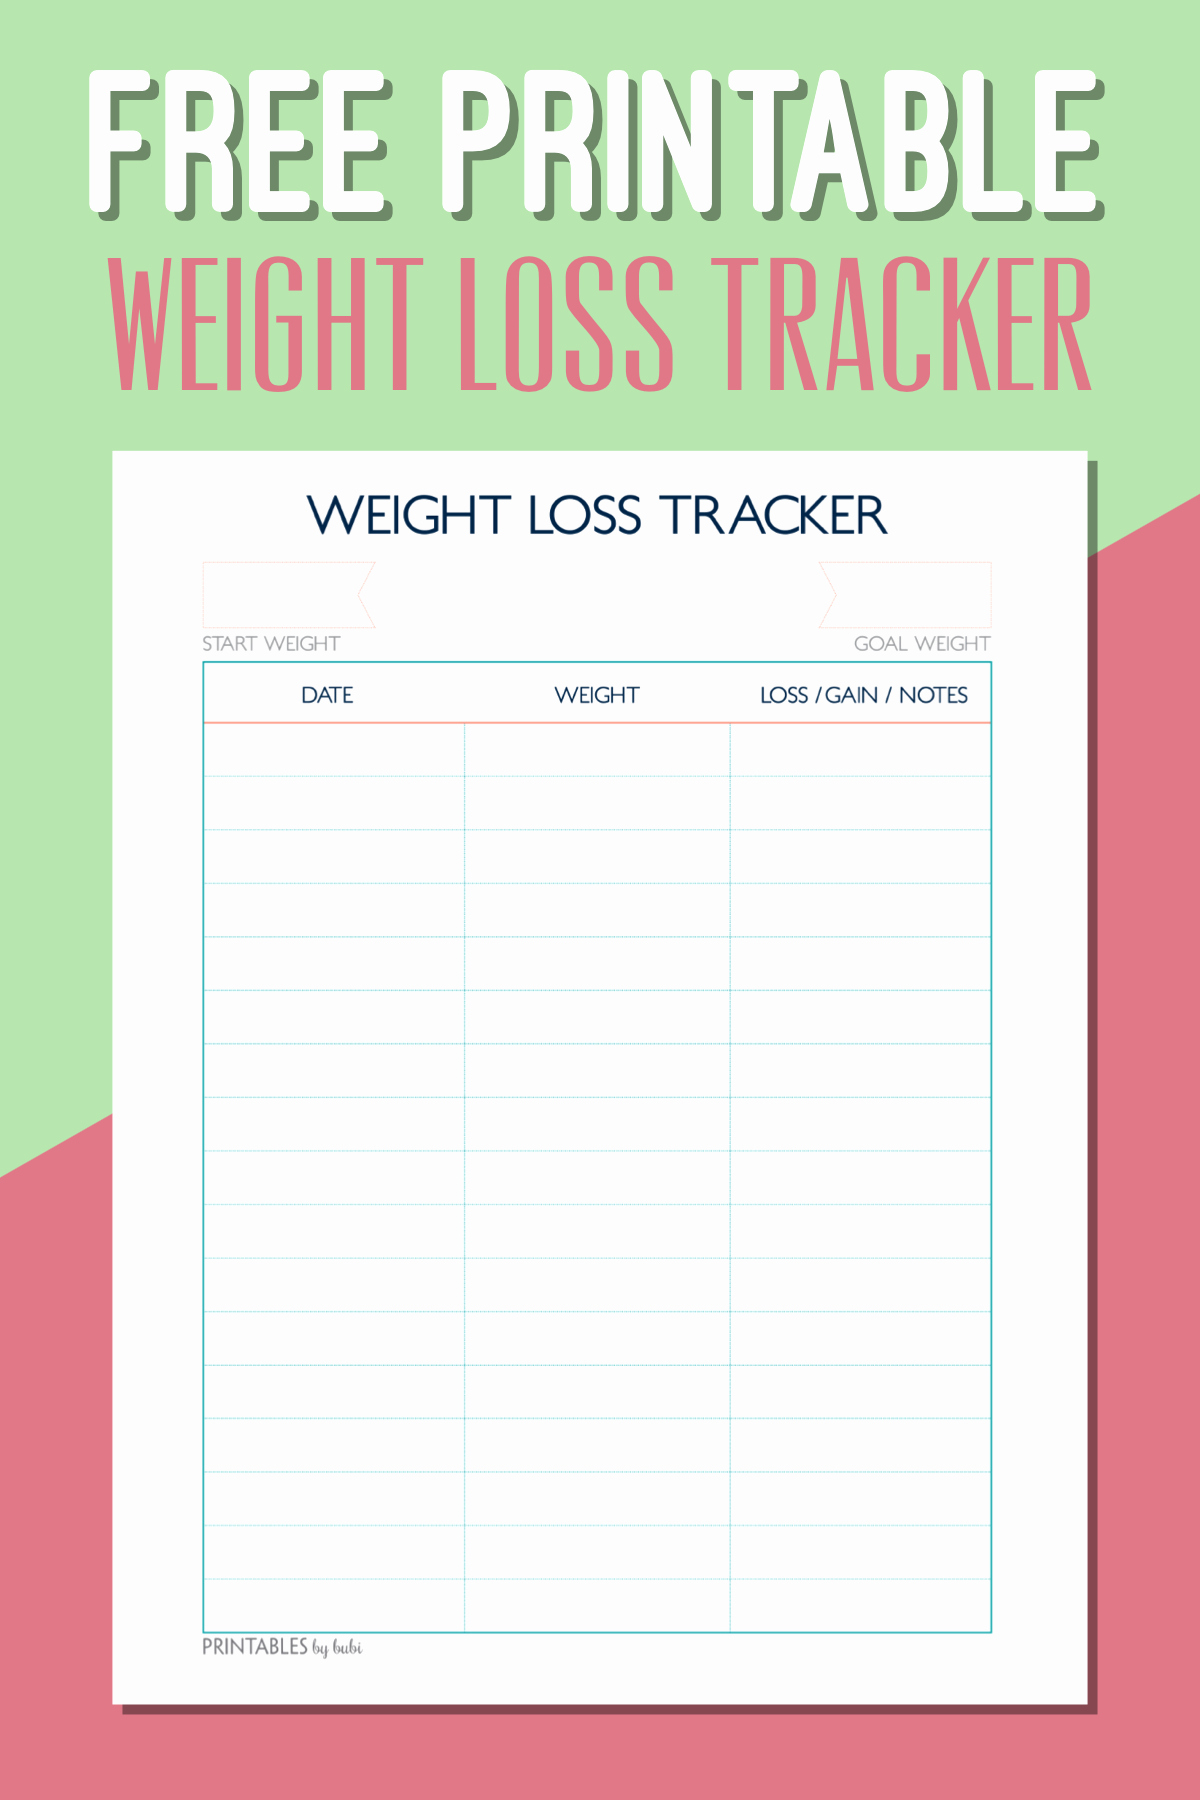 Weight Loss Chart Printable Blank Elegant Free Printable Weight Loss Tracker – Instant Download Pdf